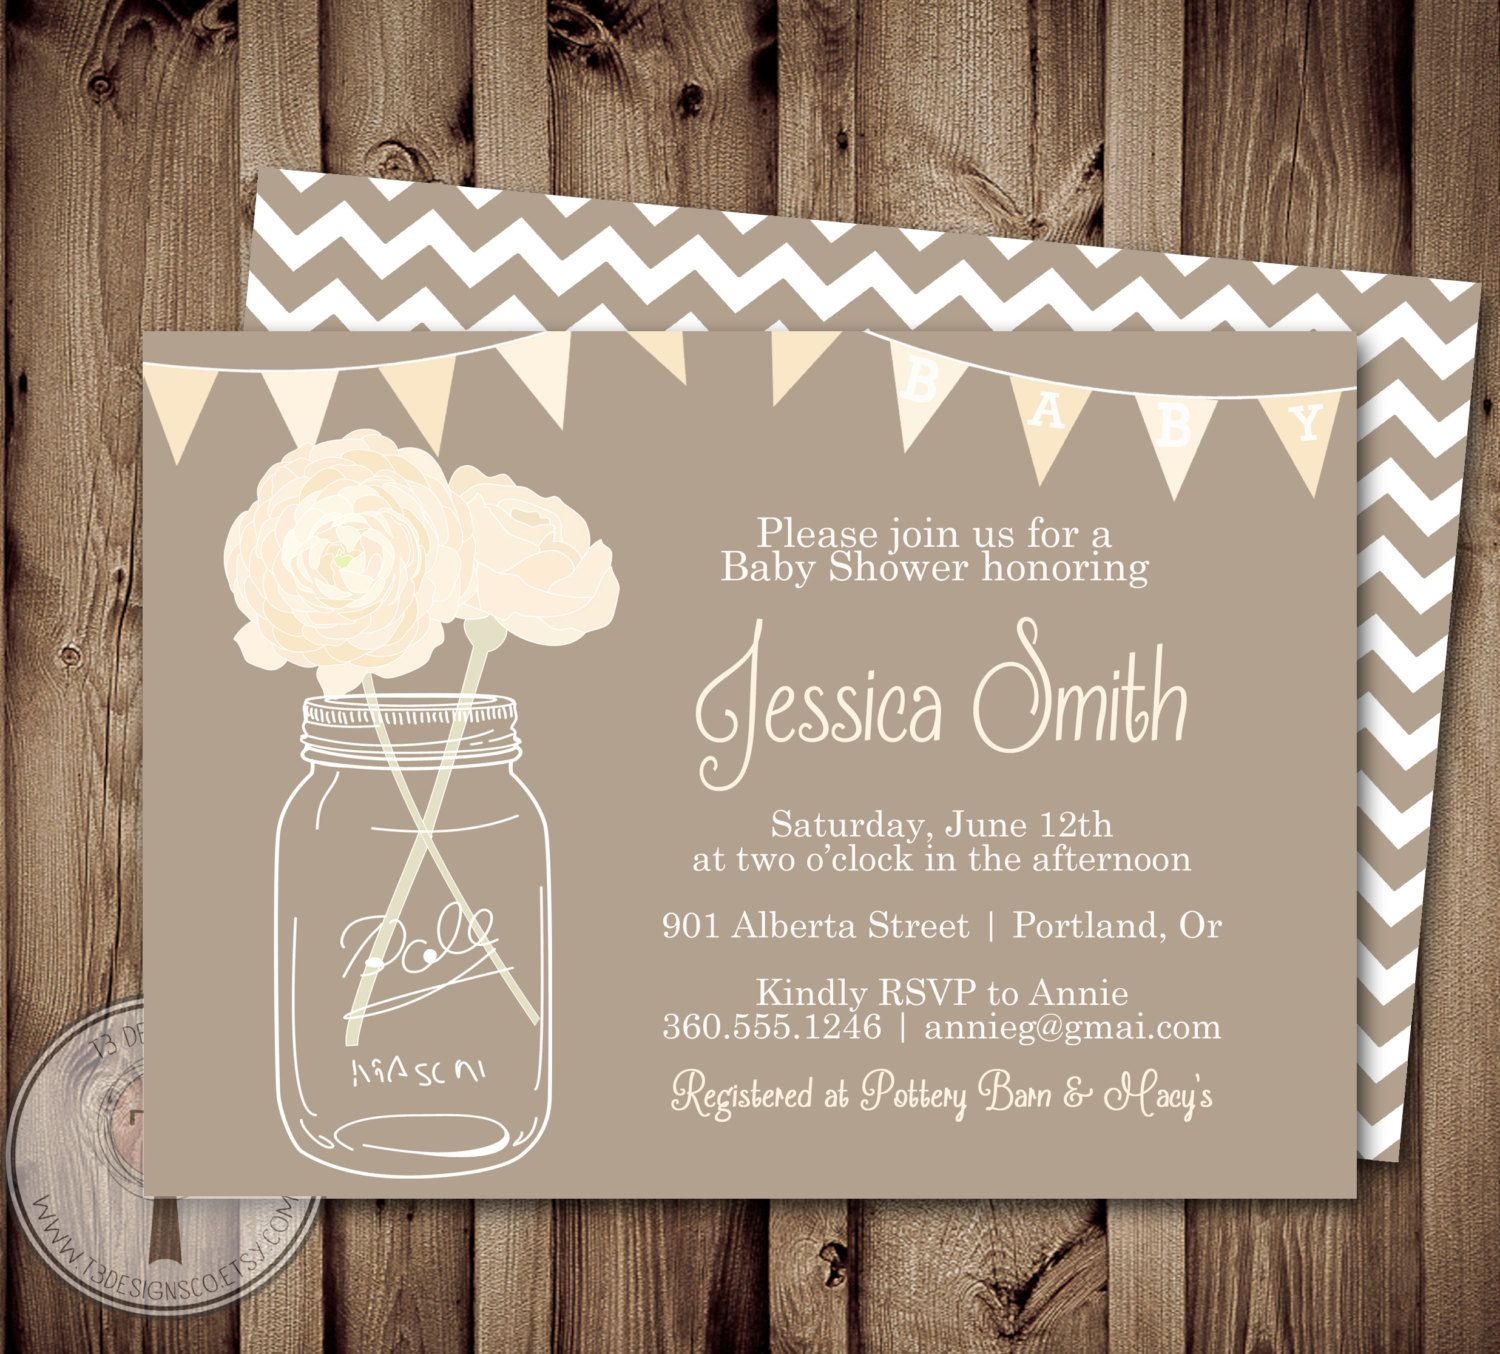 baby shower invitation wording for bringing diapers%0A NEUTRAL Baby Shower Invitation  baby shower invite  mason jar baby shower   mason jar